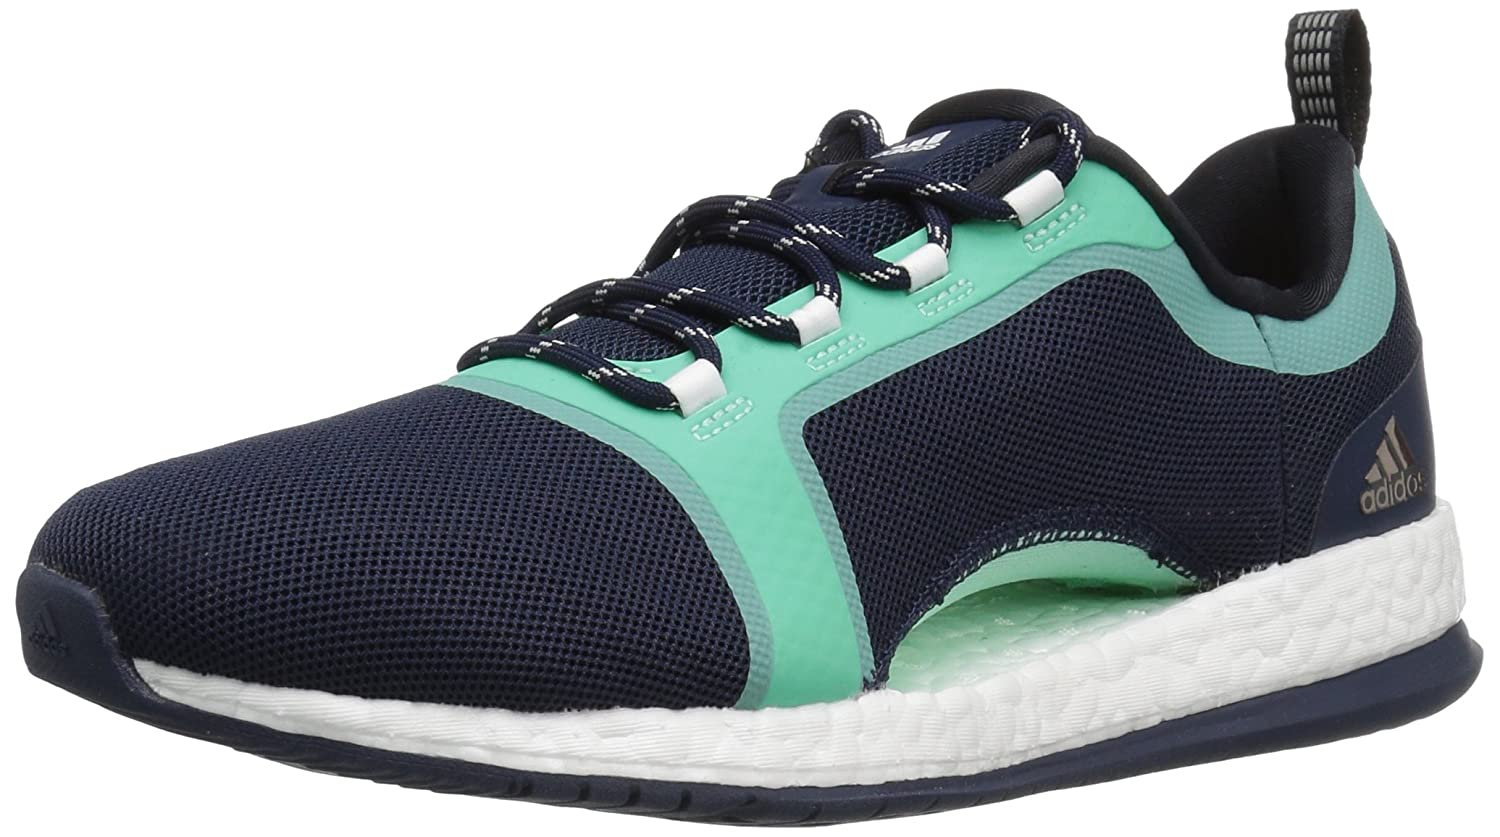 adidas Women's Pure Boost X Tr 2 Cross-Trainer Shoes B01M09KJ4J 6.5 M US|Collegiate Navy/Black/Easy Green